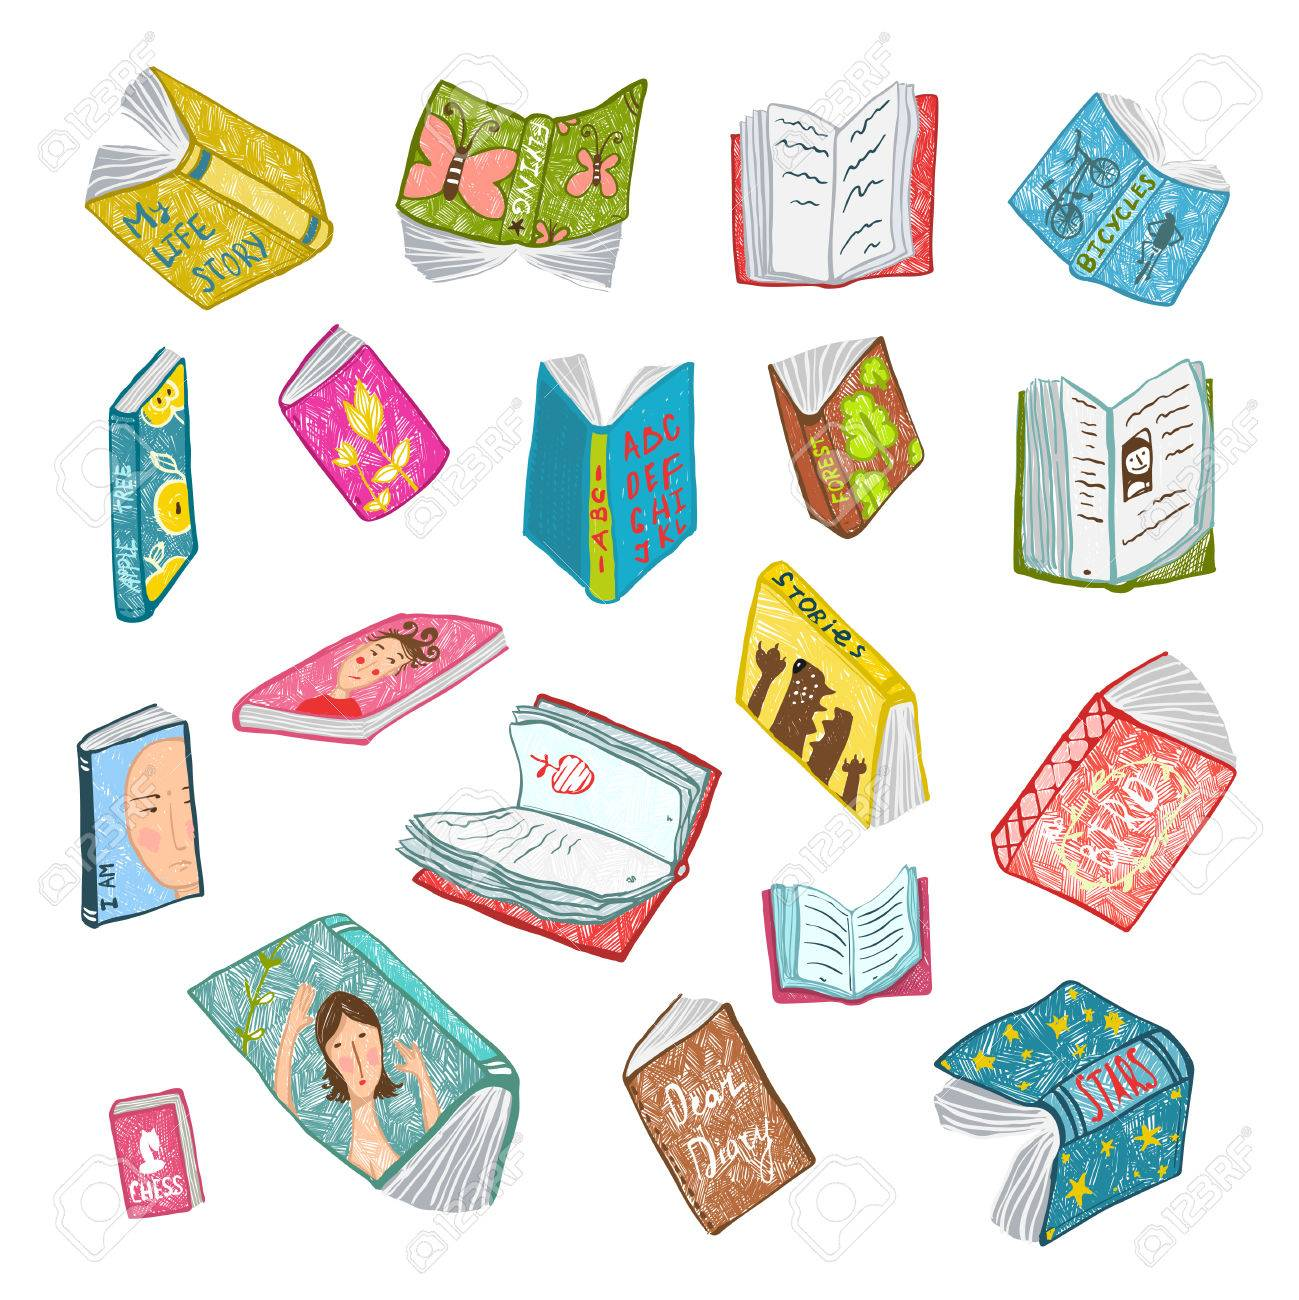 Colorful Open Books Drawing Library Collection. Big set of hand drawn brightly colored literature covers illustration. - 45635110